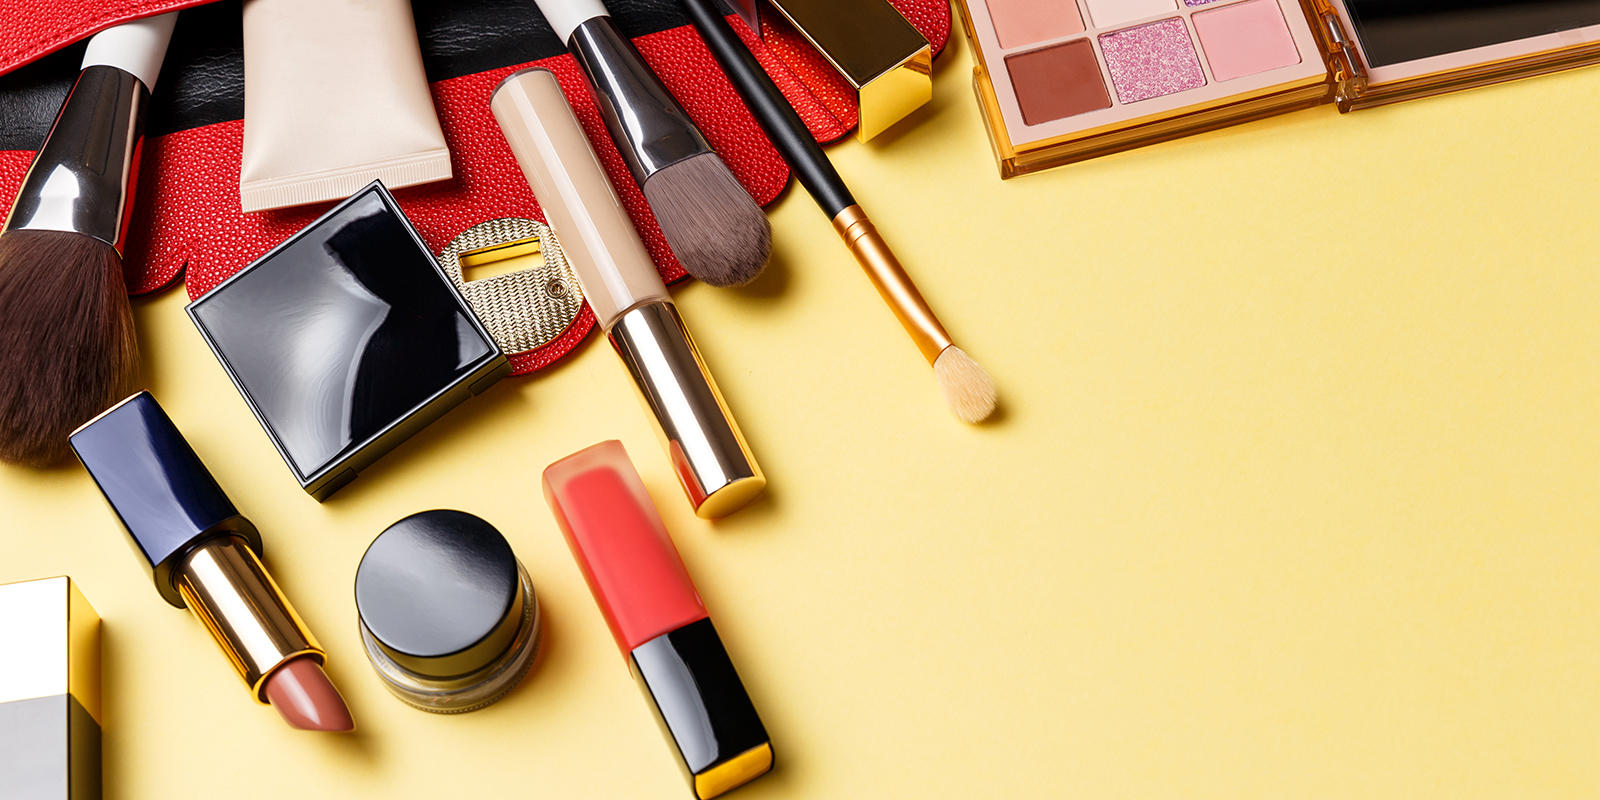 Shop Sephora's beauty must-haves